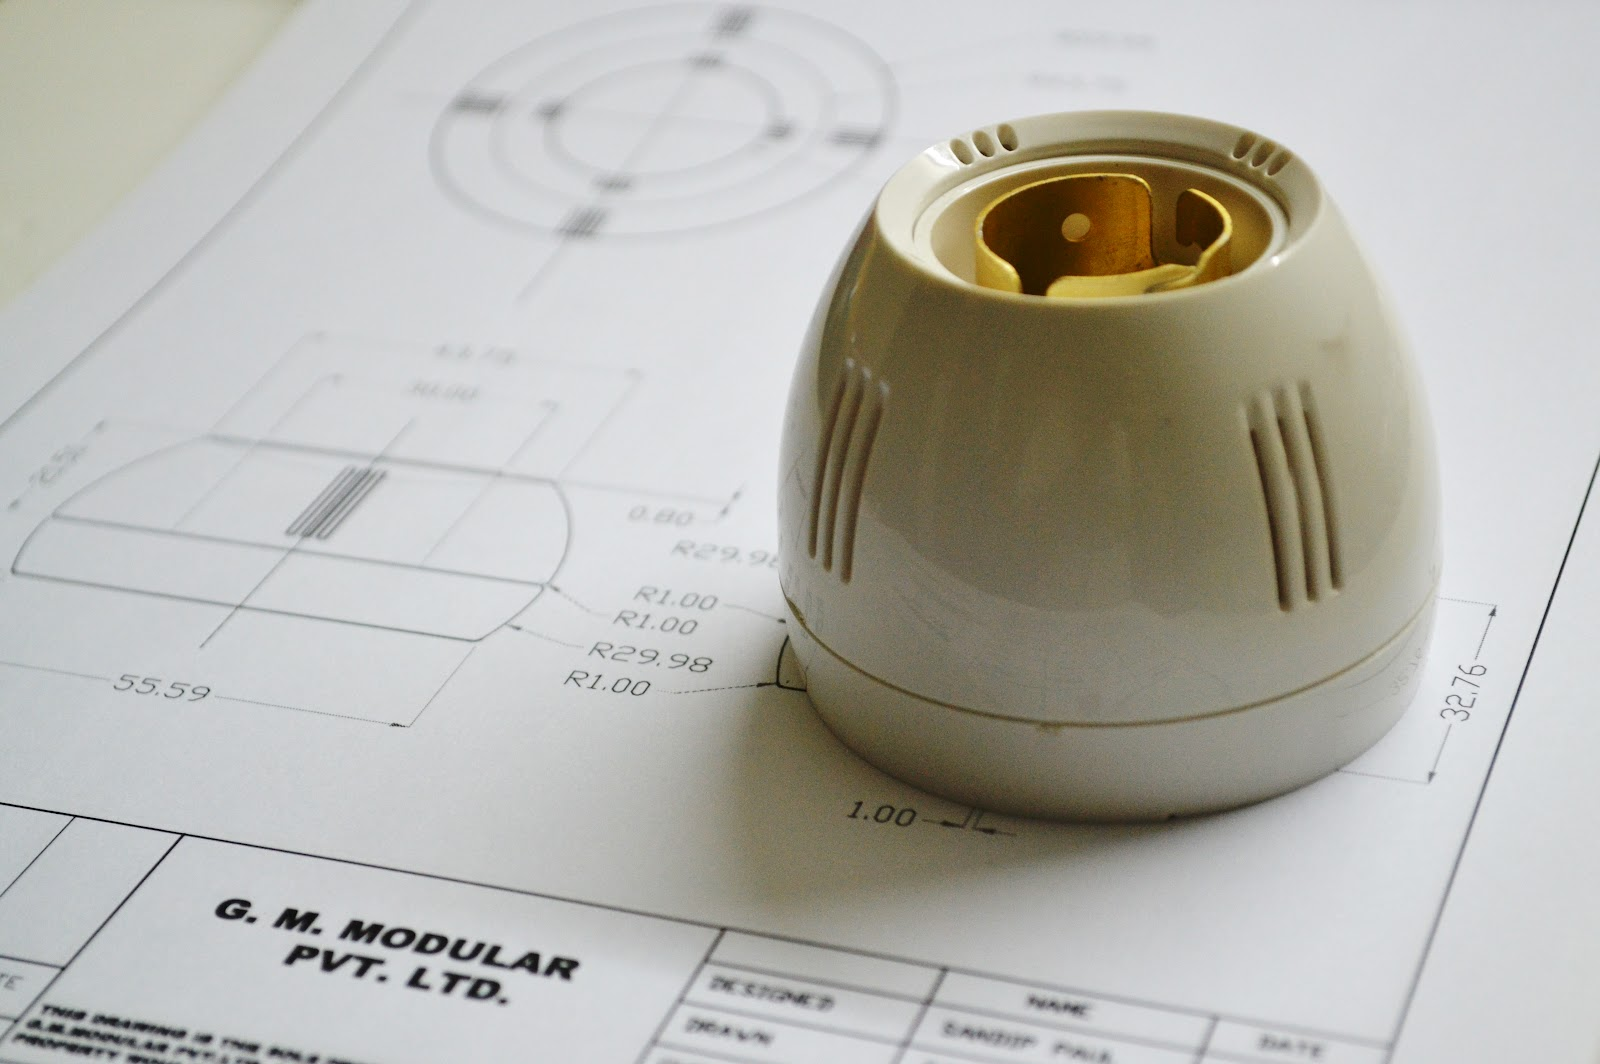 differential design: | Success Story for Bulb Holder Design  45hul